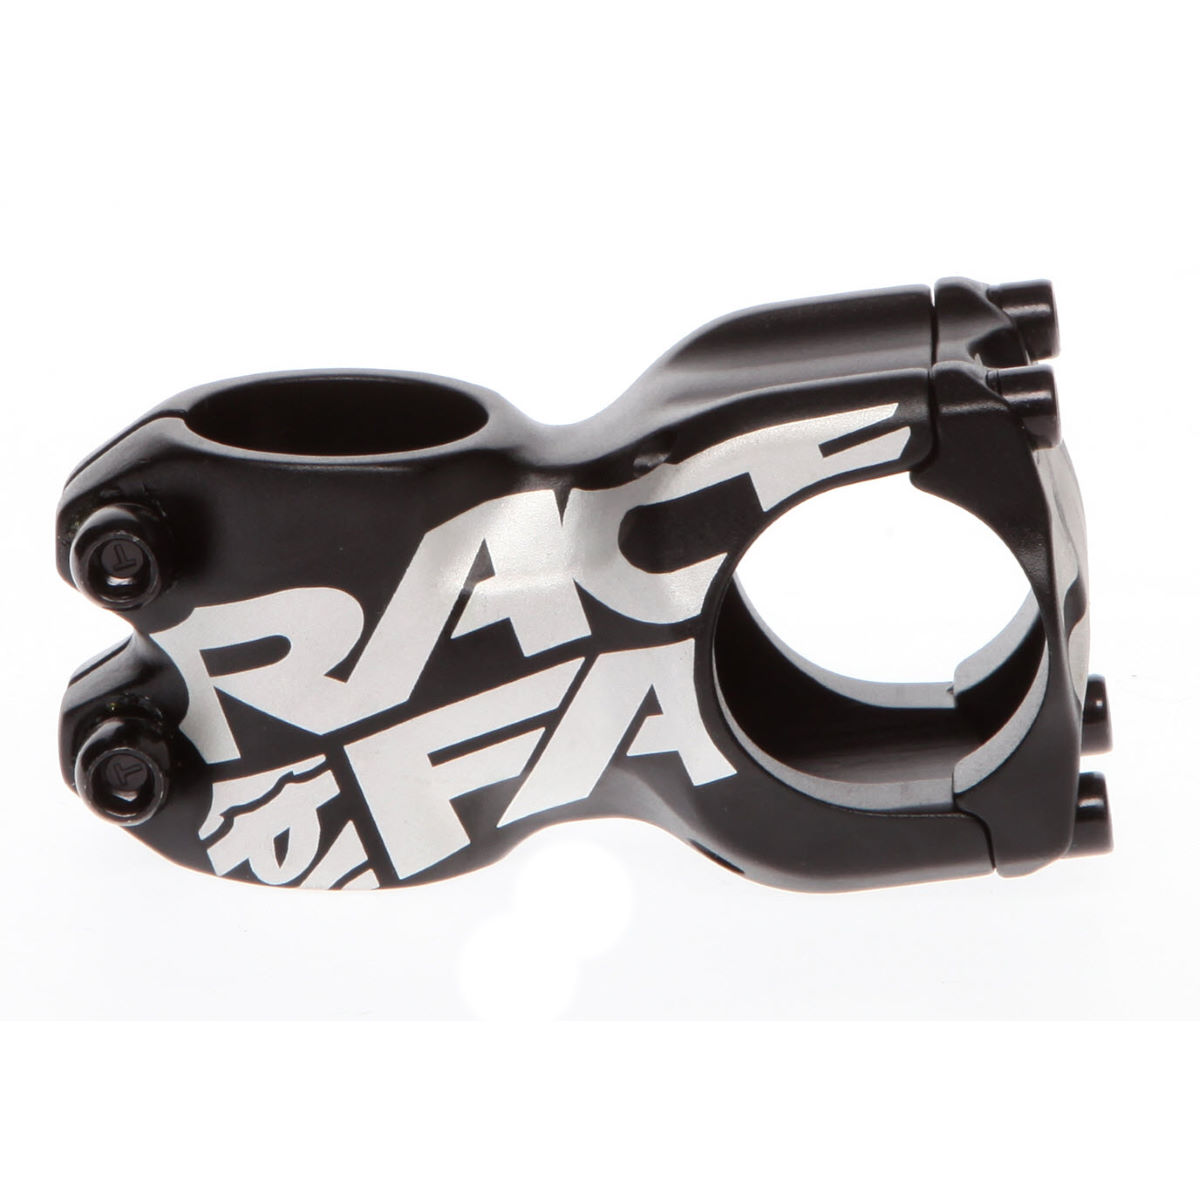 Race Face Chester Mtb Stem - 070mm X 31.8mm Black  Stems